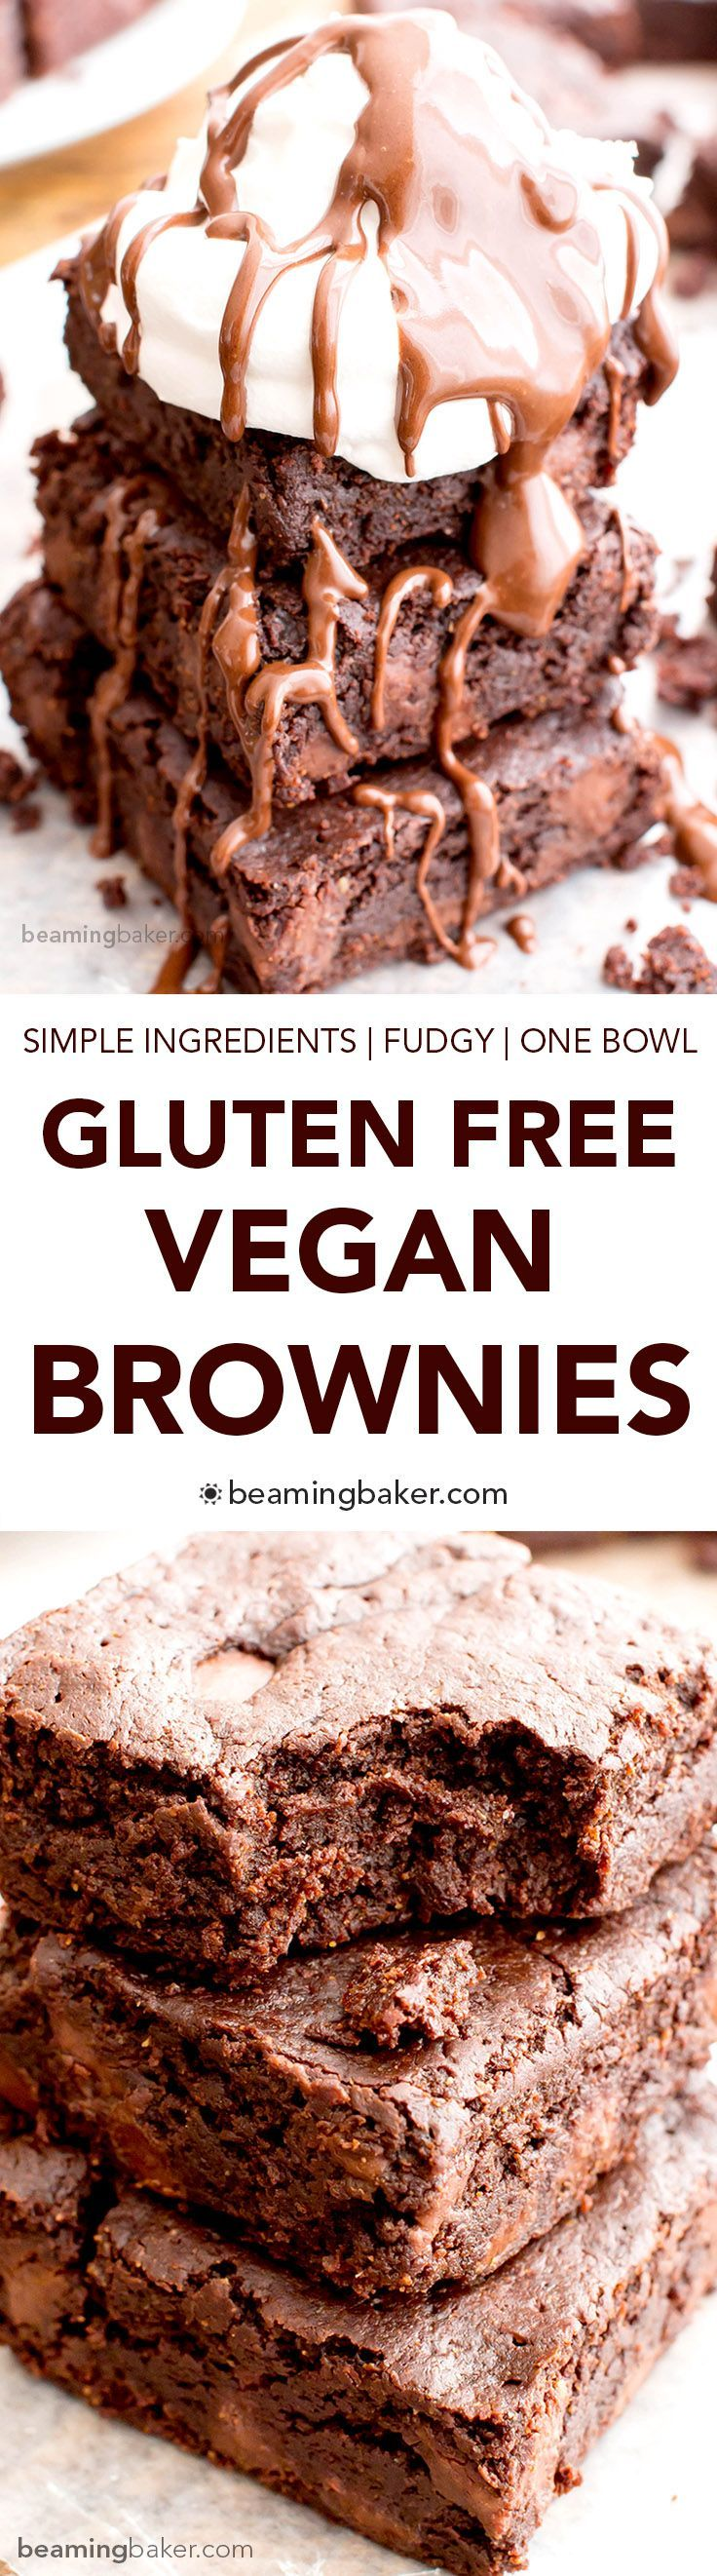 Gluten Free Vegan Brownies (V+GF): a one bowl recipe for the best gluten free vegan brownies made with simple, whole ingredients.